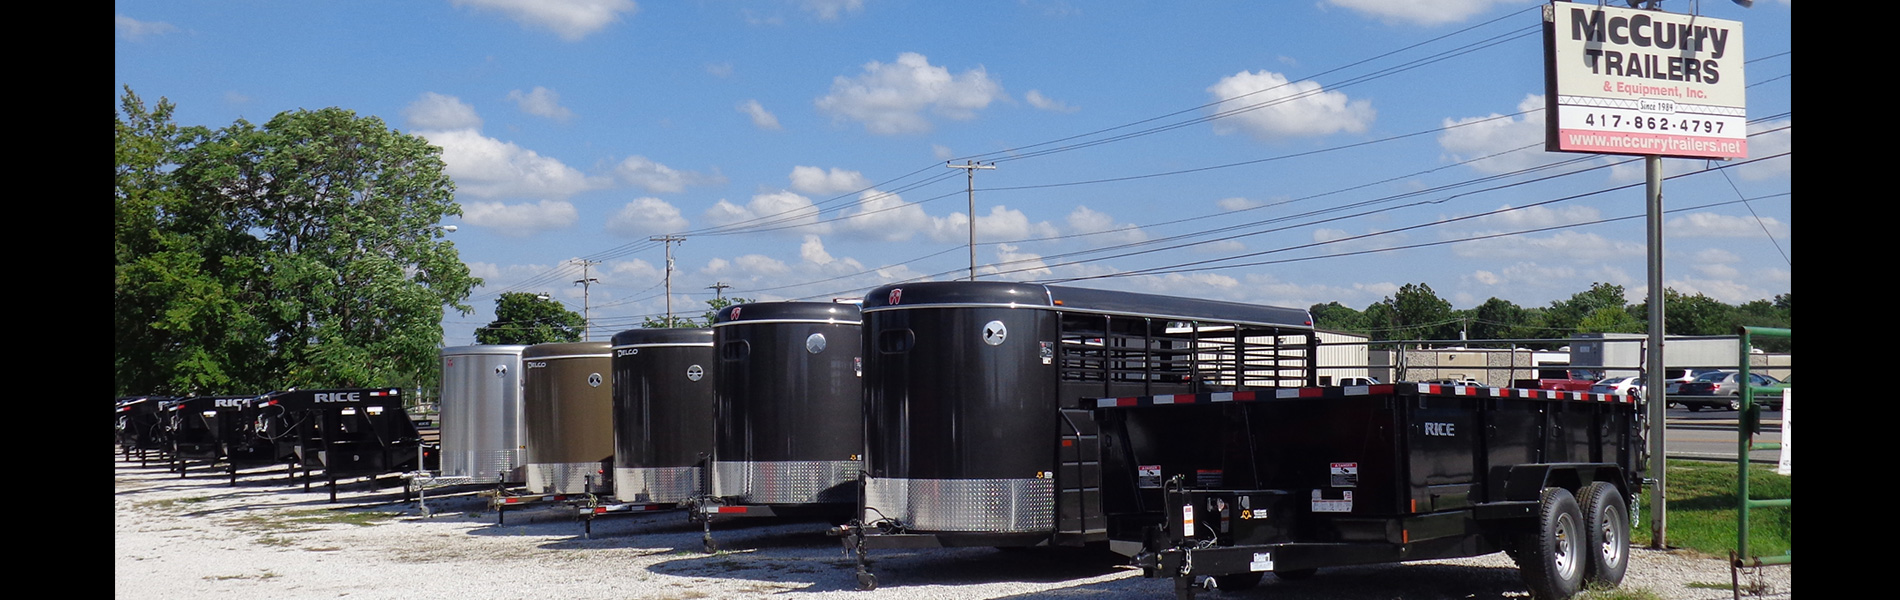 Home Mccurry Trailers In Springfield Mo Is Your Local Springfield